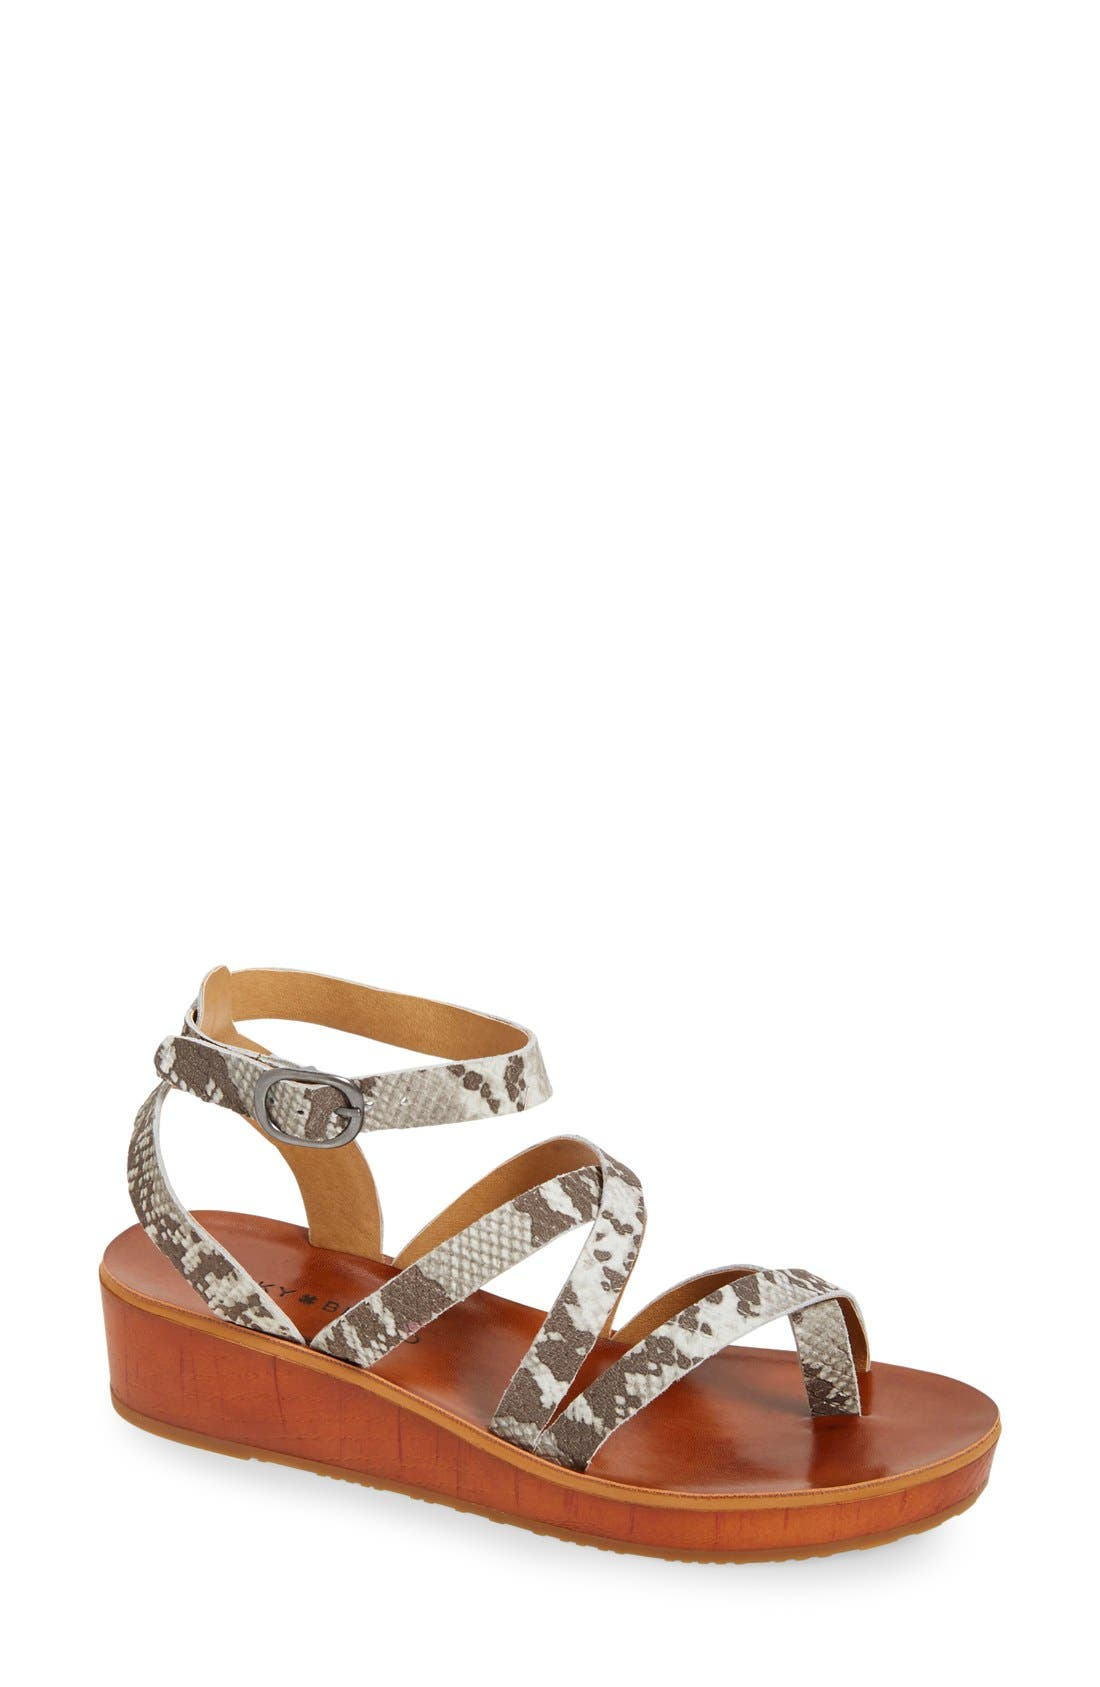 'Honeyy' Platform Sandal,                             Main thumbnail 1, color,                             020